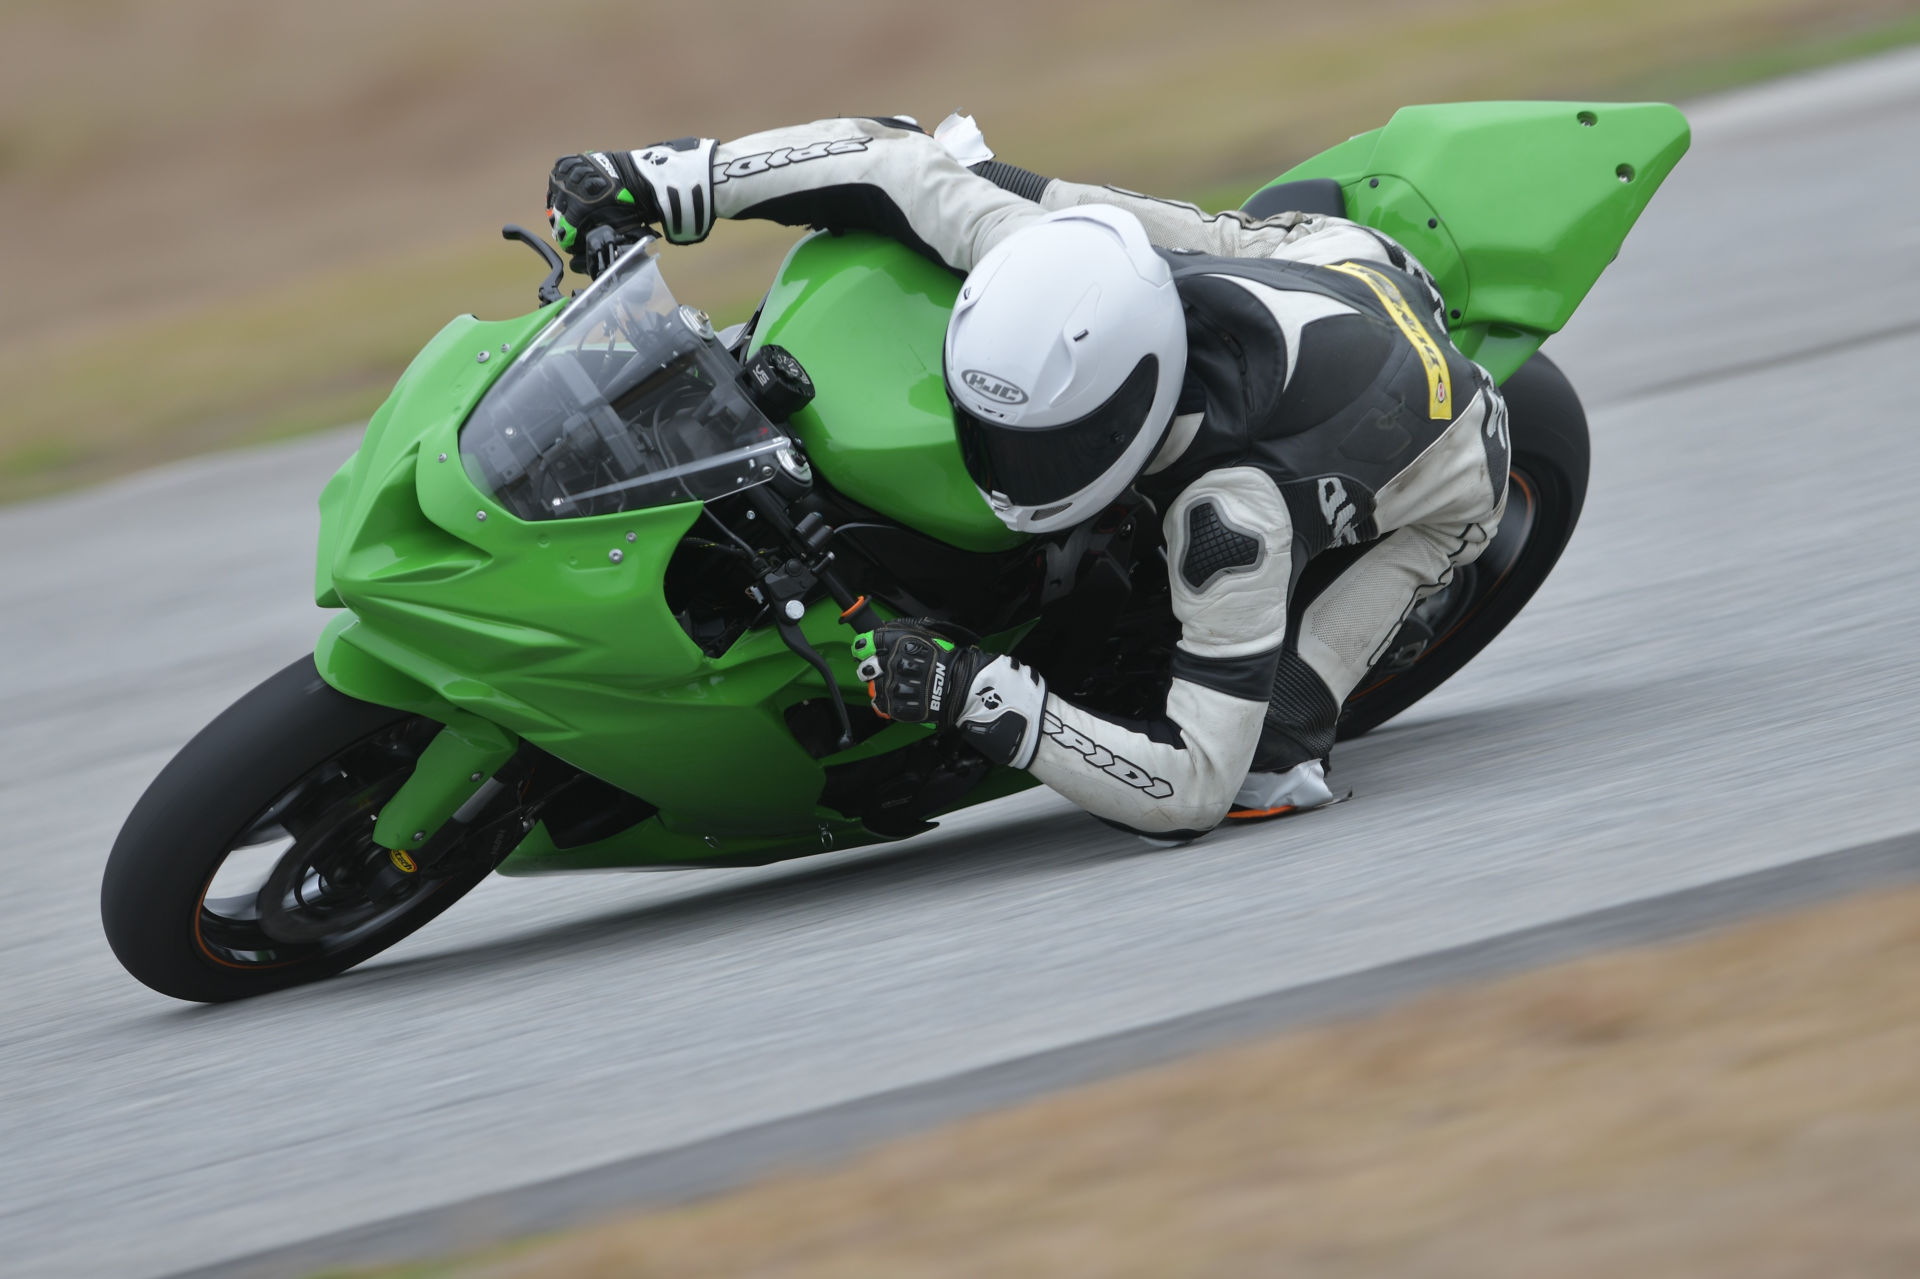 Dominic Doyle testing his new BARTCON Racing Kawasaki ZX-6R at Jennings GP. Photo courtesy BARTCON Racing.